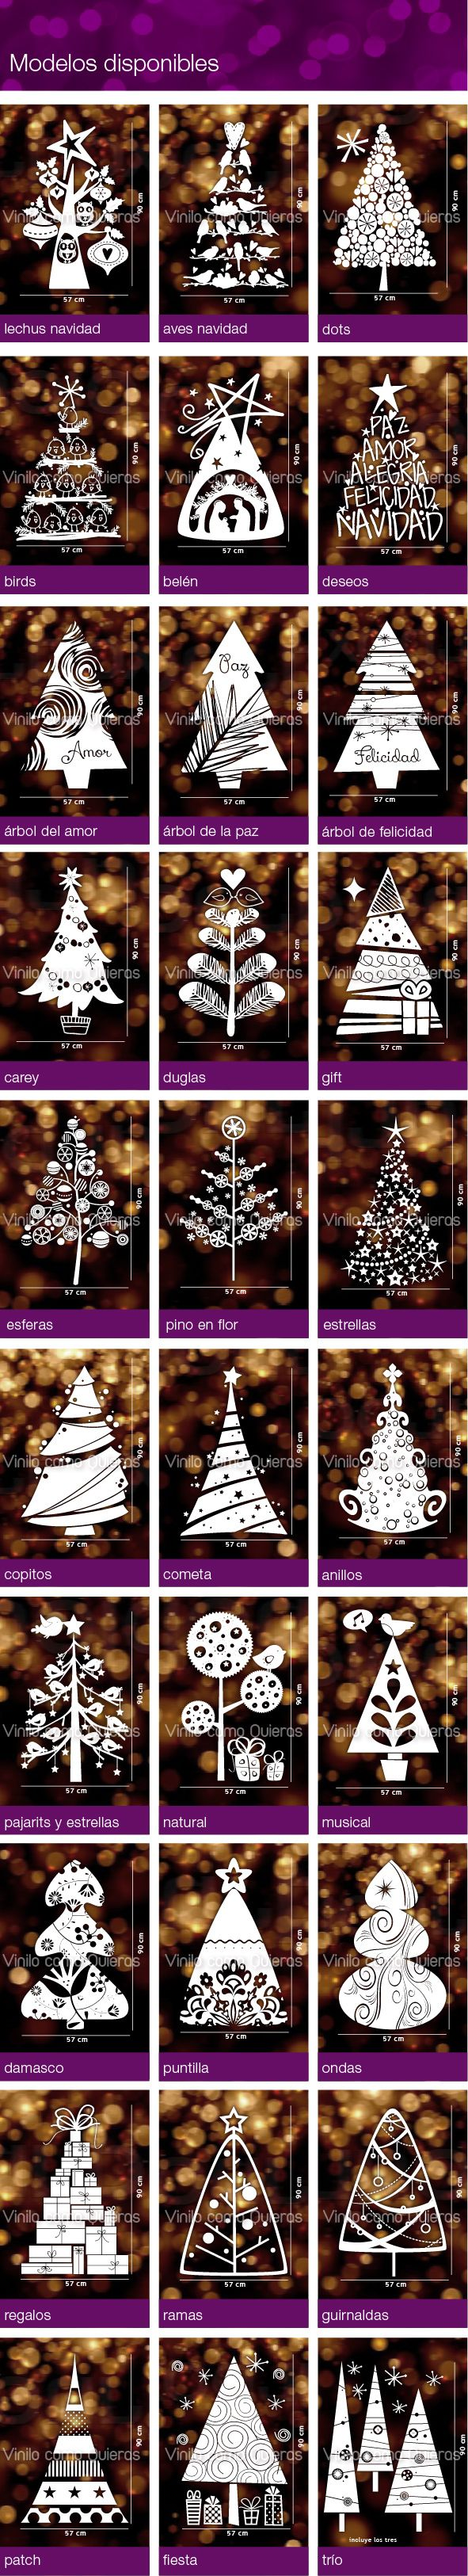 121 best images about Navidad on Pinterest